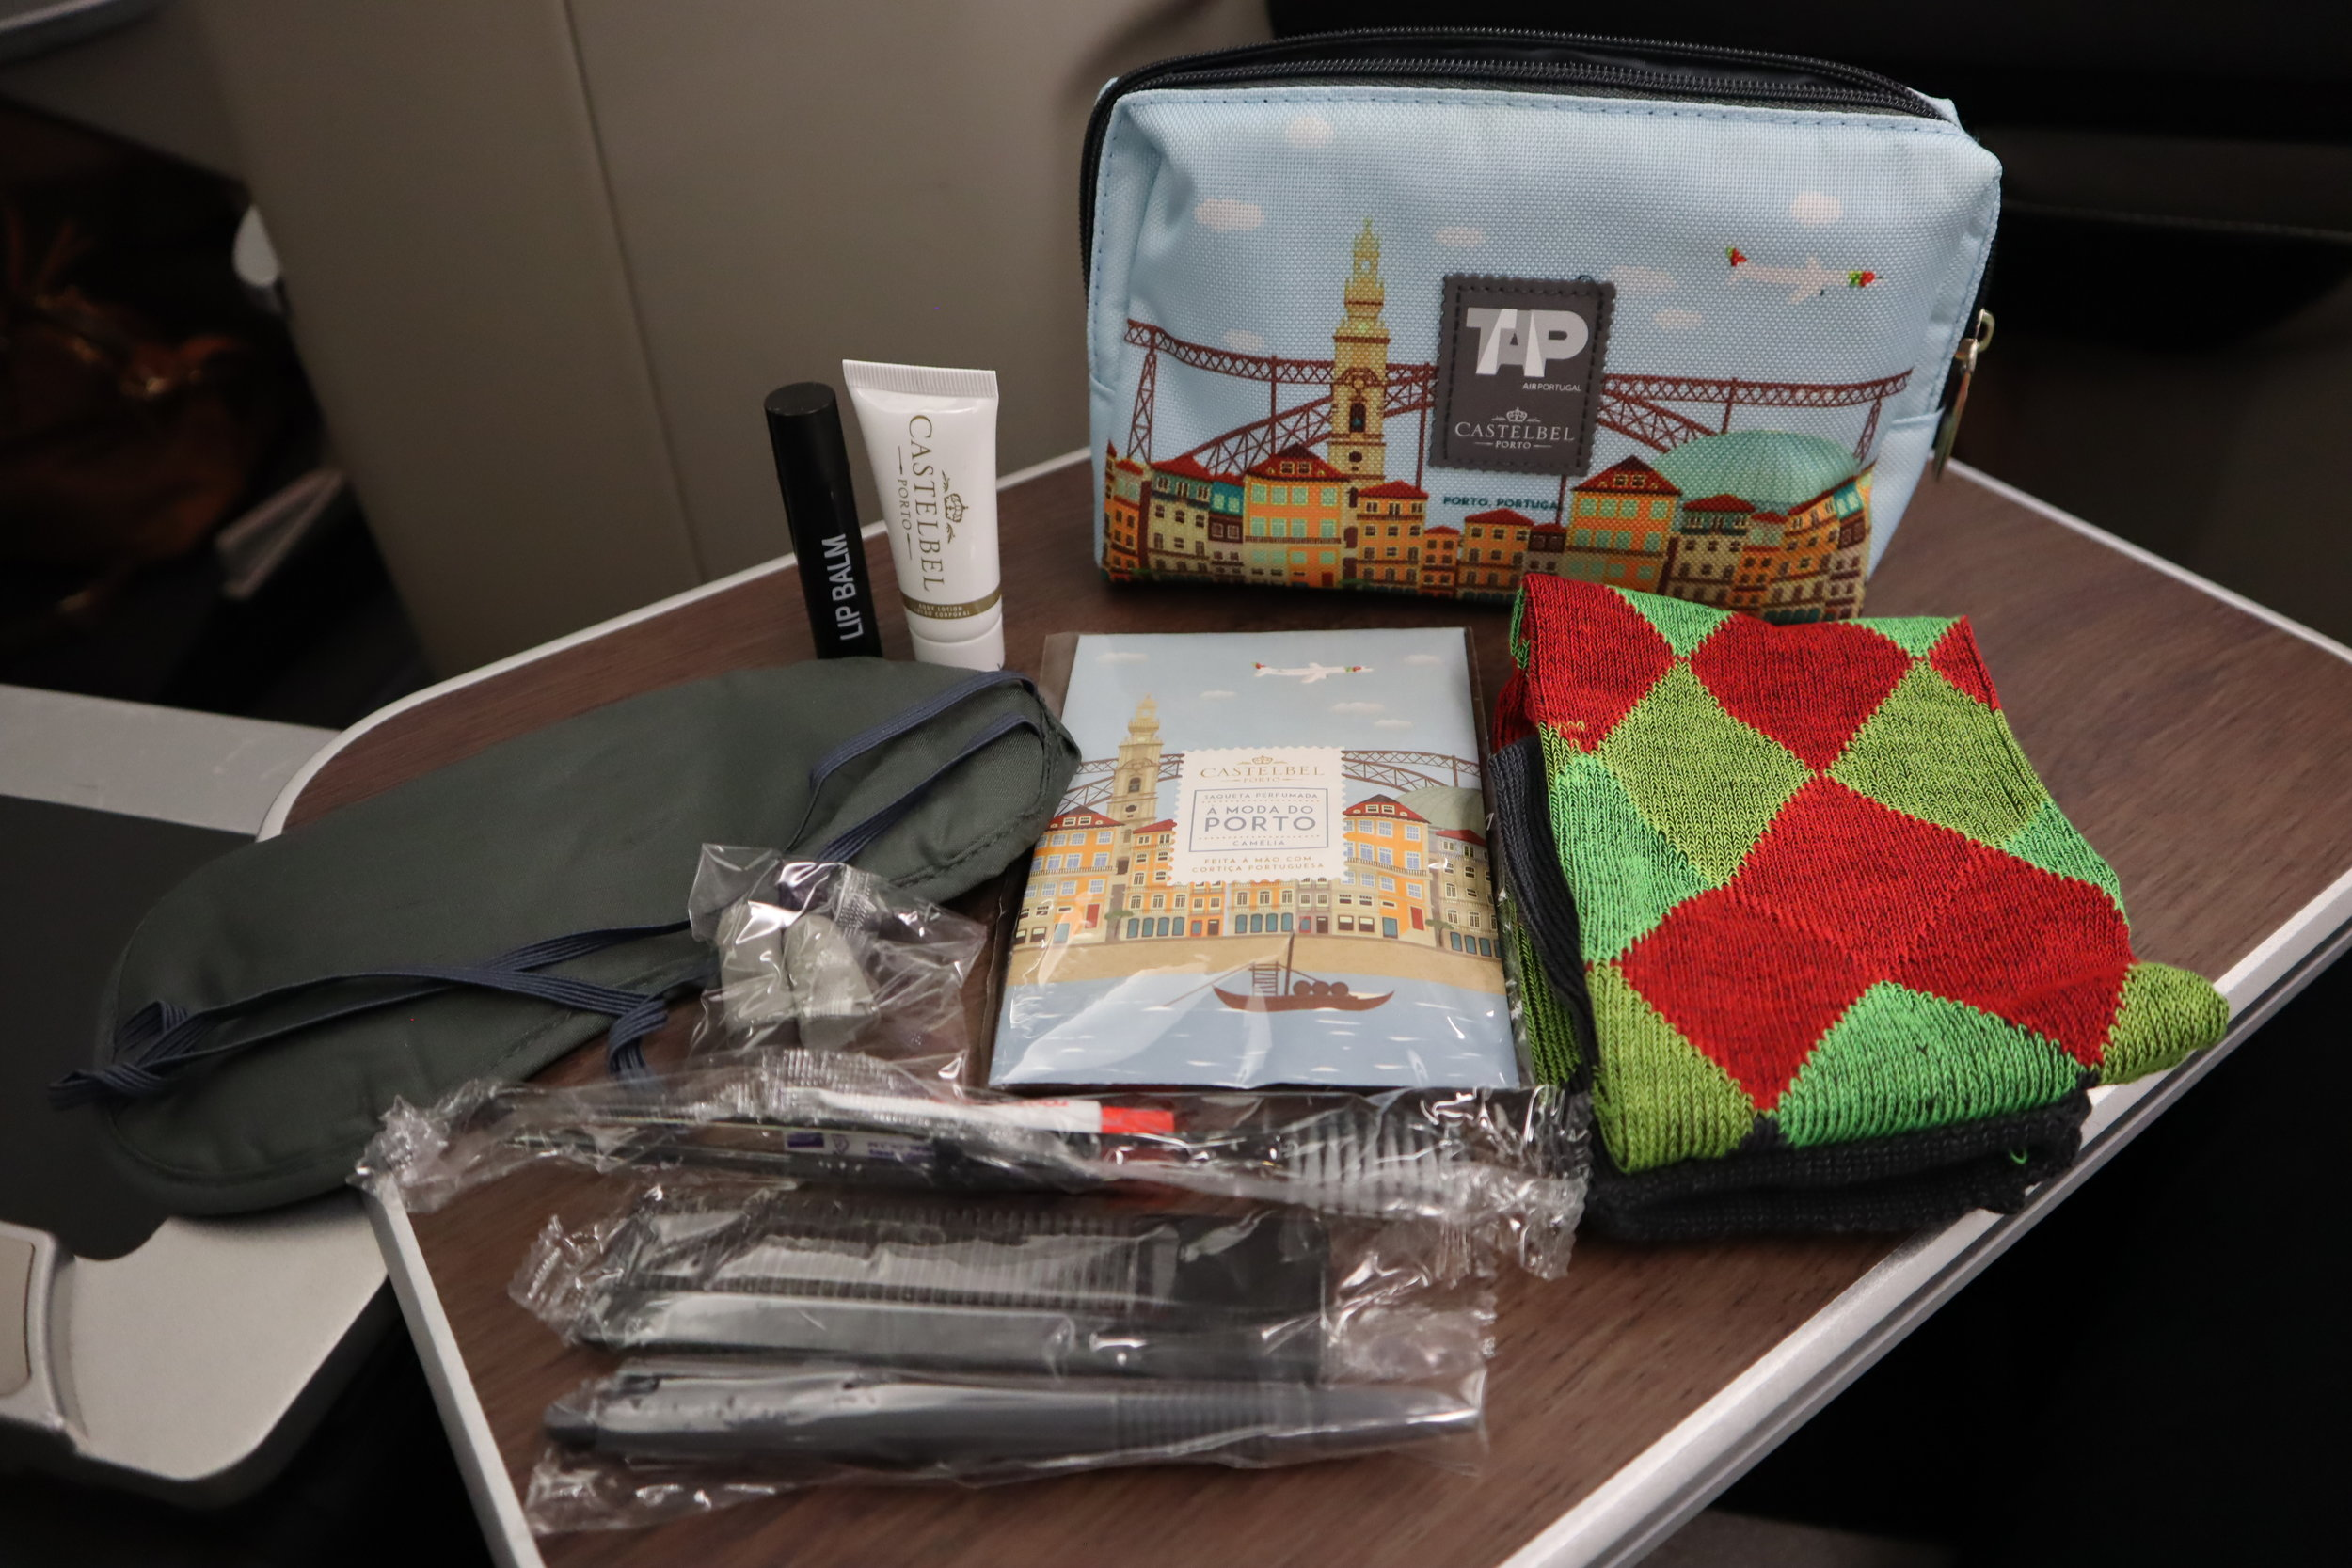 TAP Air Portugal business class – Amenity kit contents